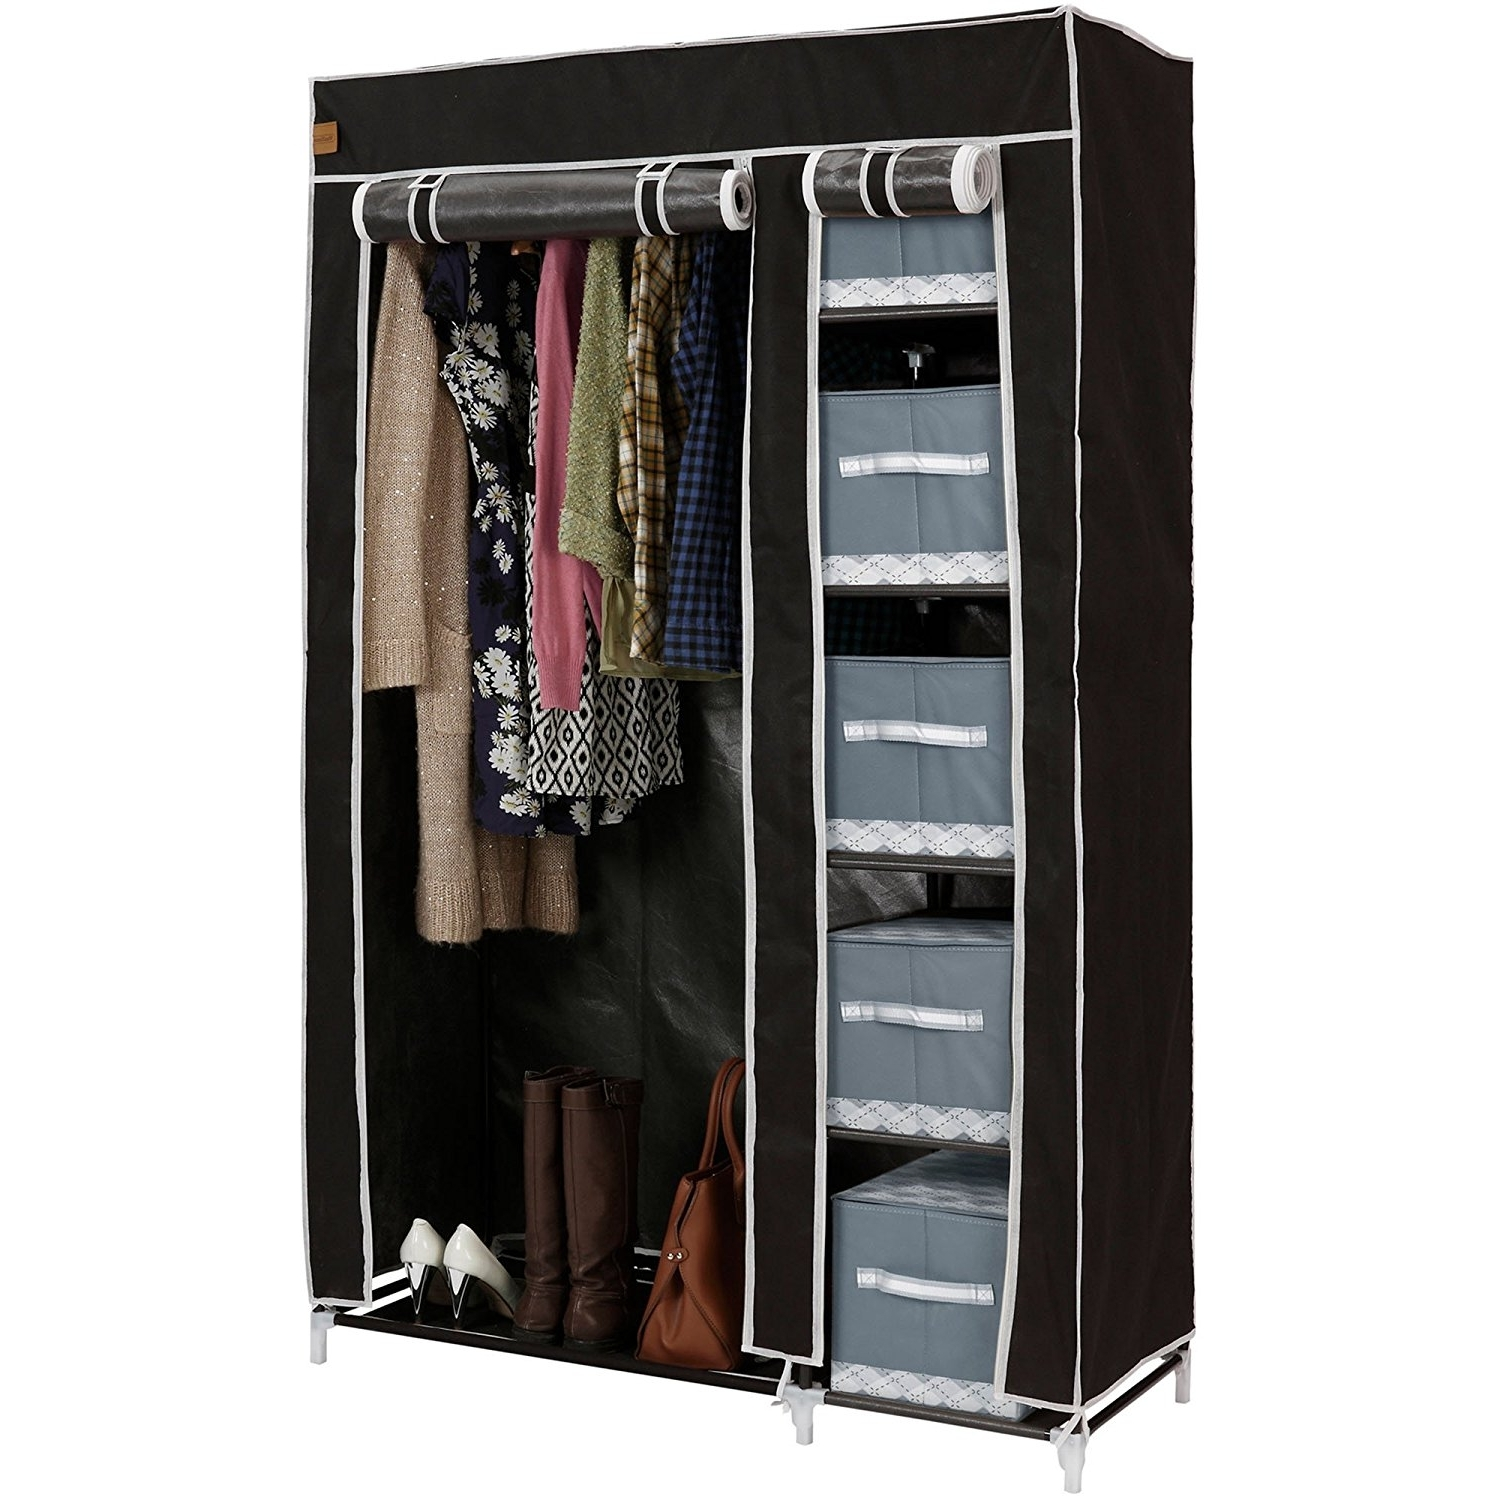 Preferred Double Black Covered Tidy Rail Wardrobes Pertaining To Vonhaus Double Canvas Effect Wardrobe – Clothes Storage Cupboard (View 12 of 15)